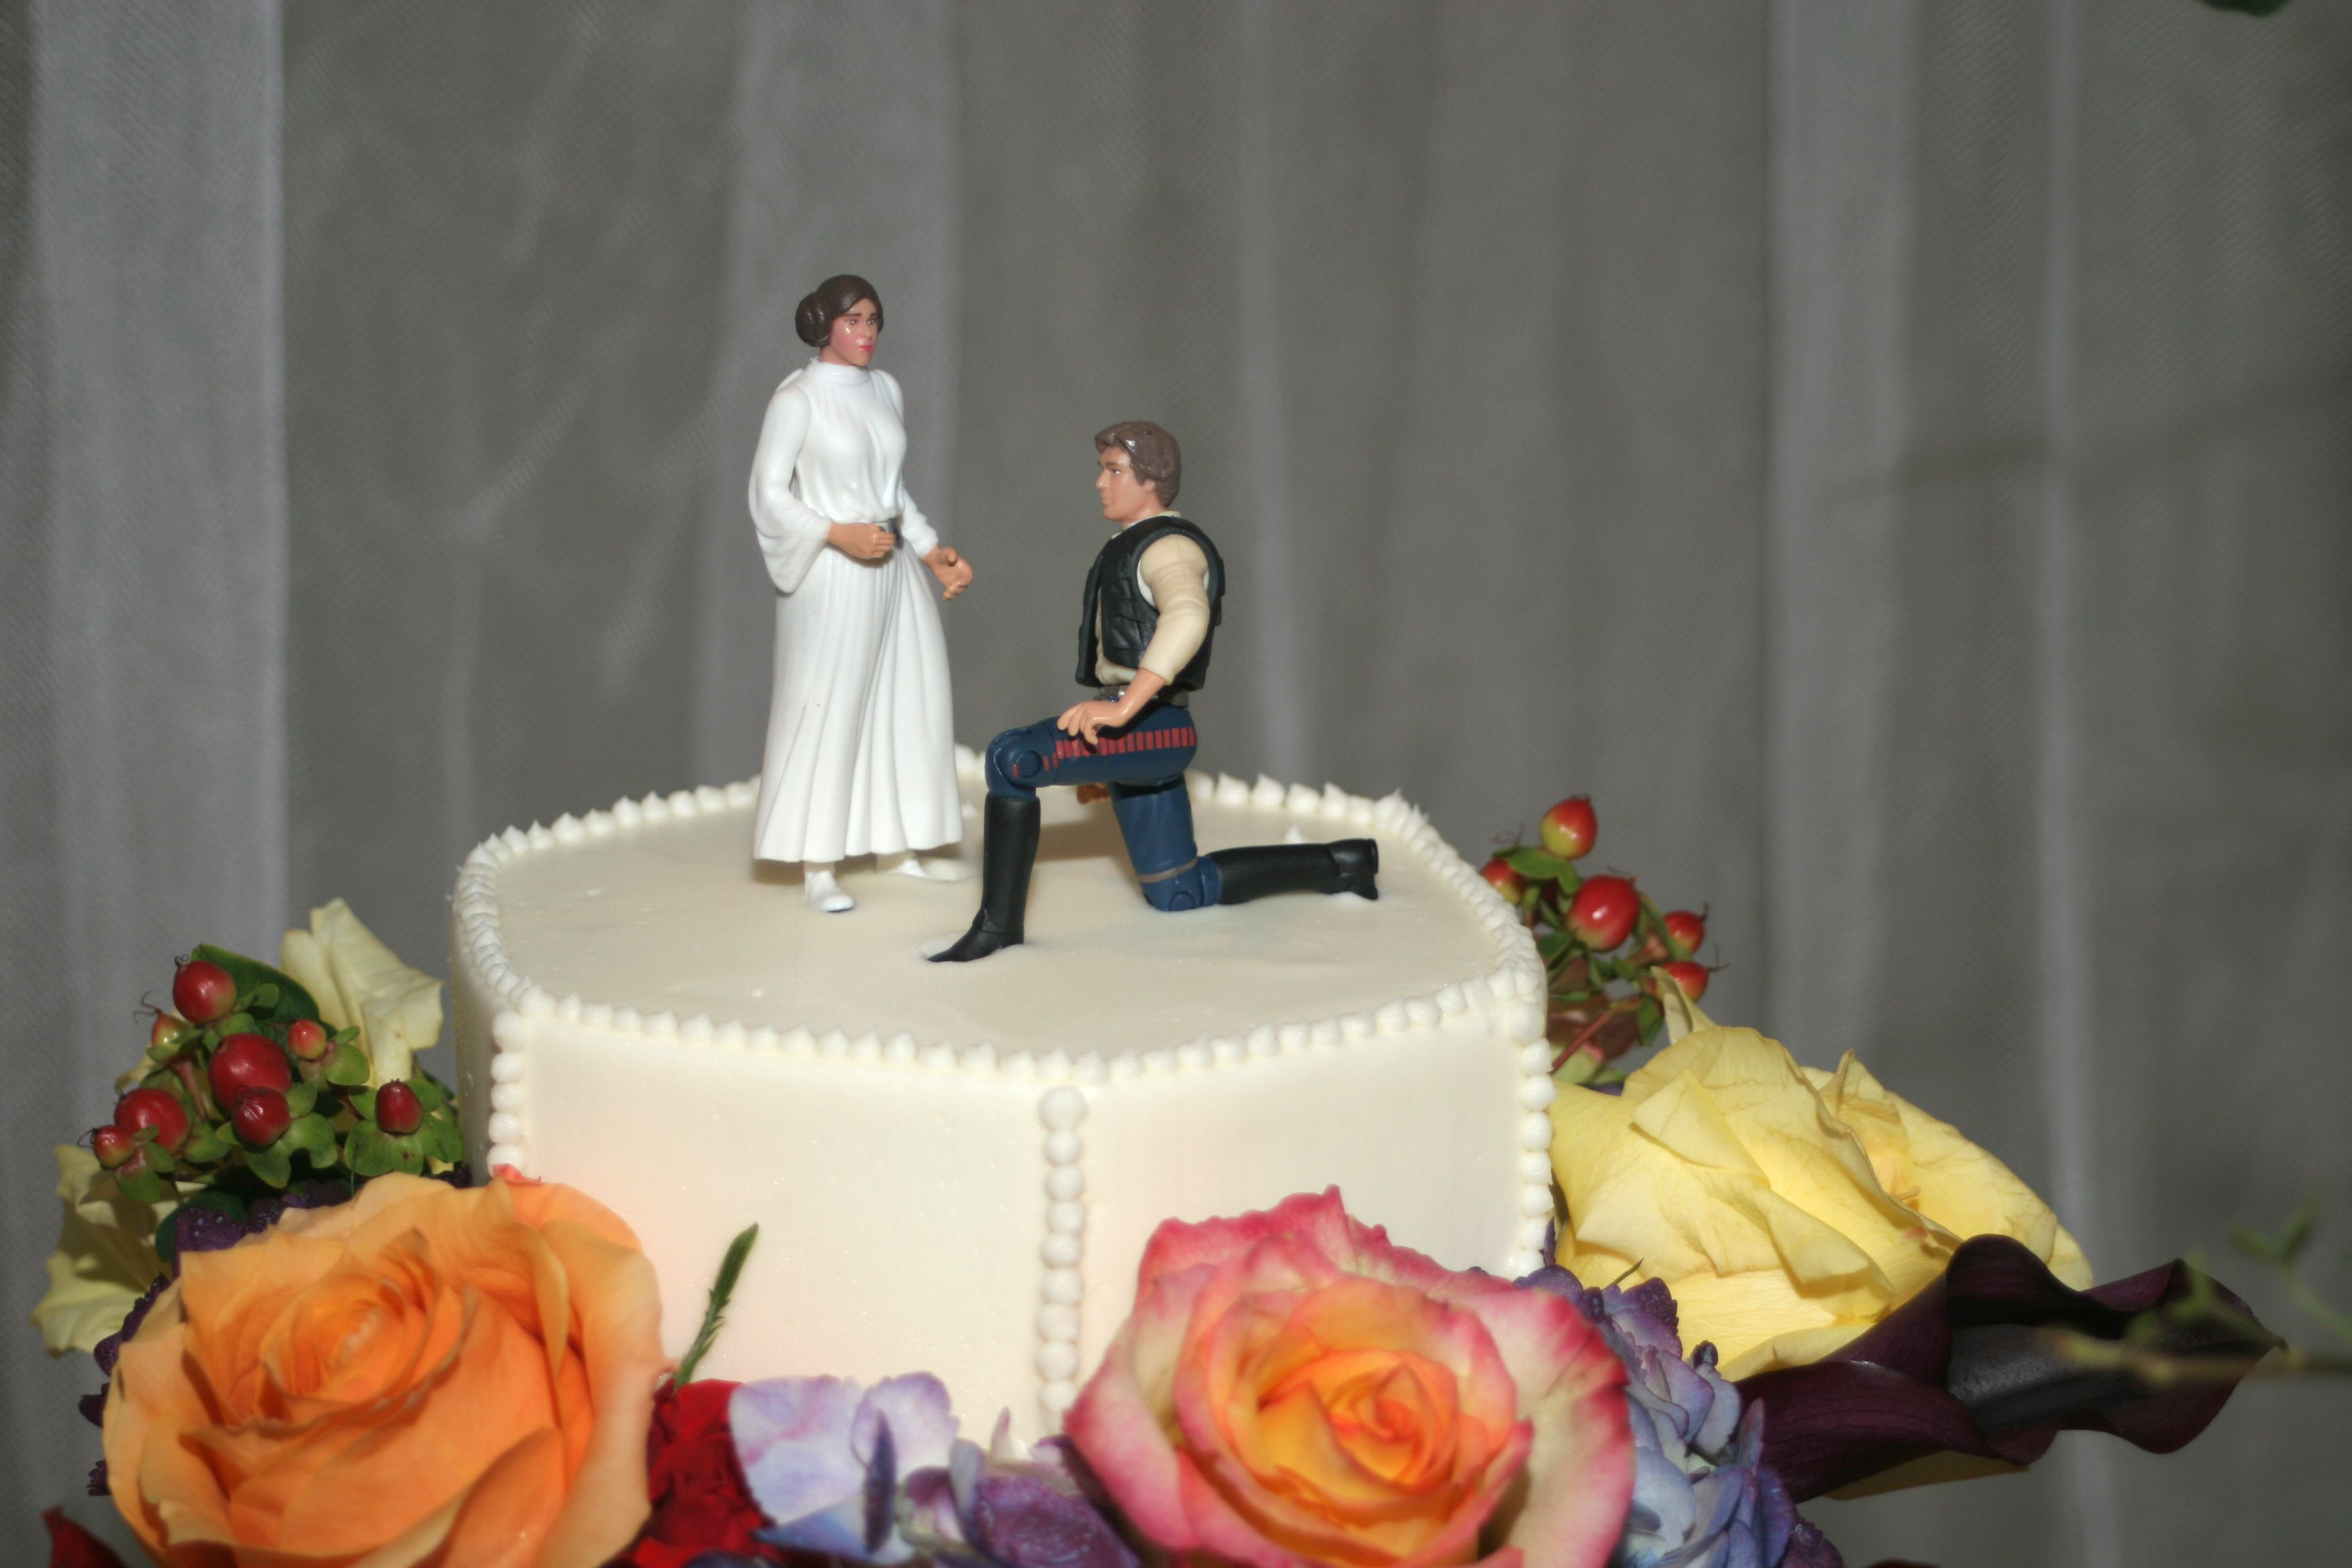 action figure wedding cake toppers   Google Search   Shannon     action figure wedding cake toppers   Google Search